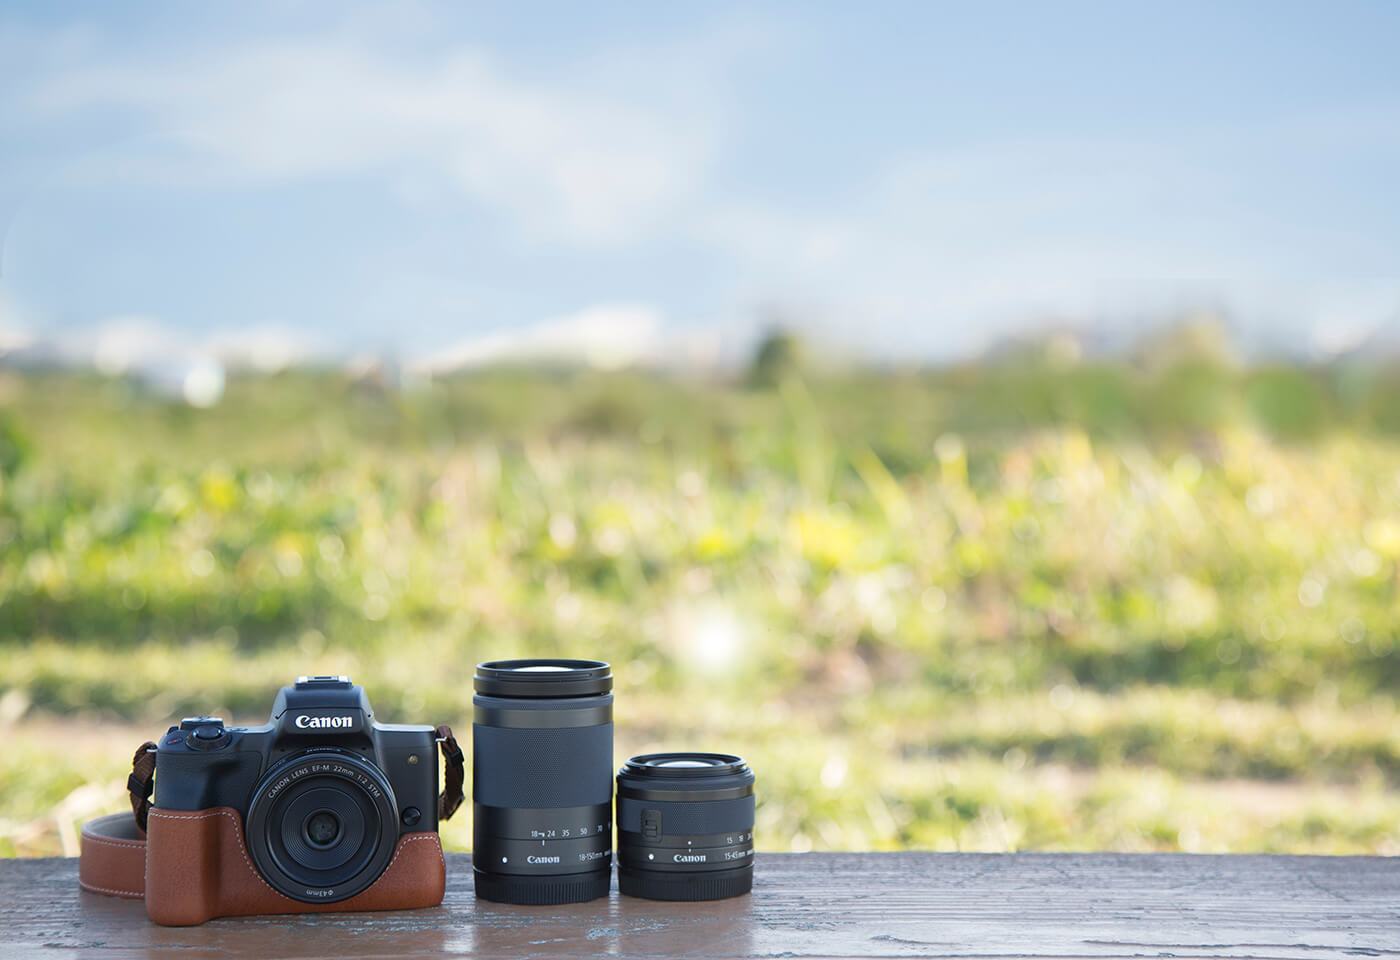 Image of camera and lenses outdoors taken with an EOS M50